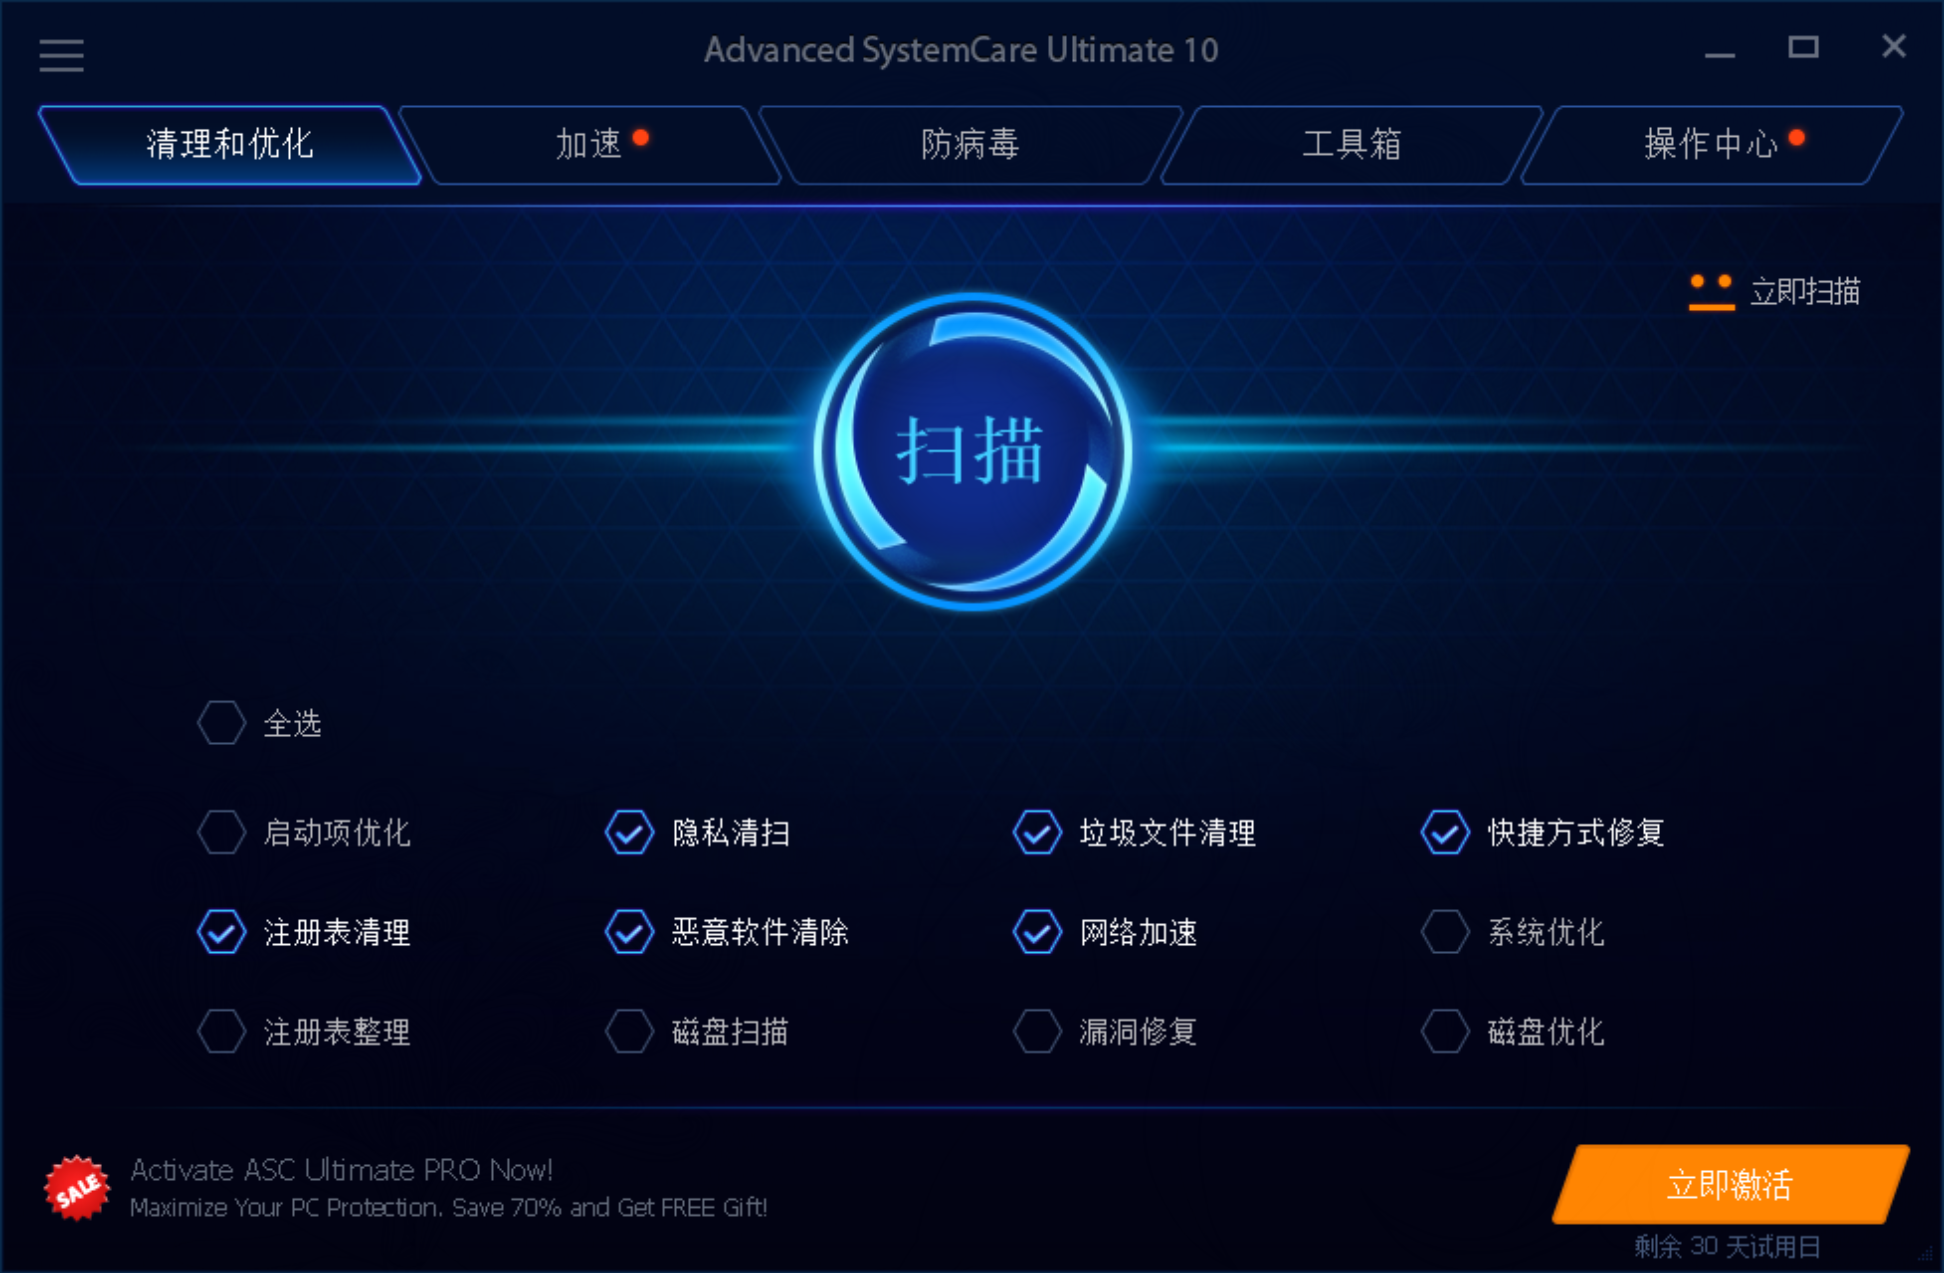 Advanced SystemCare Ultimate 10 旗舰版